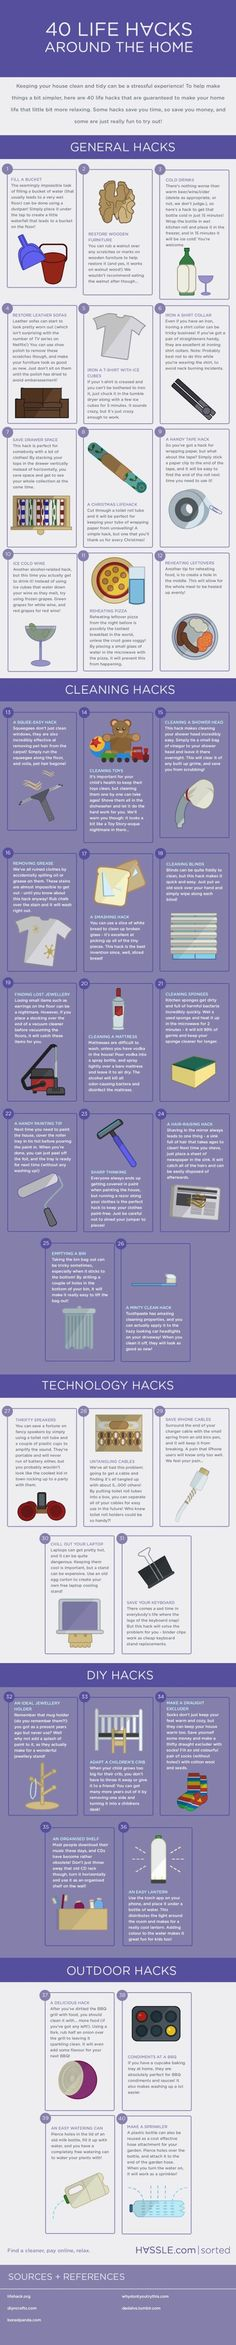 Tips and hacks for the home